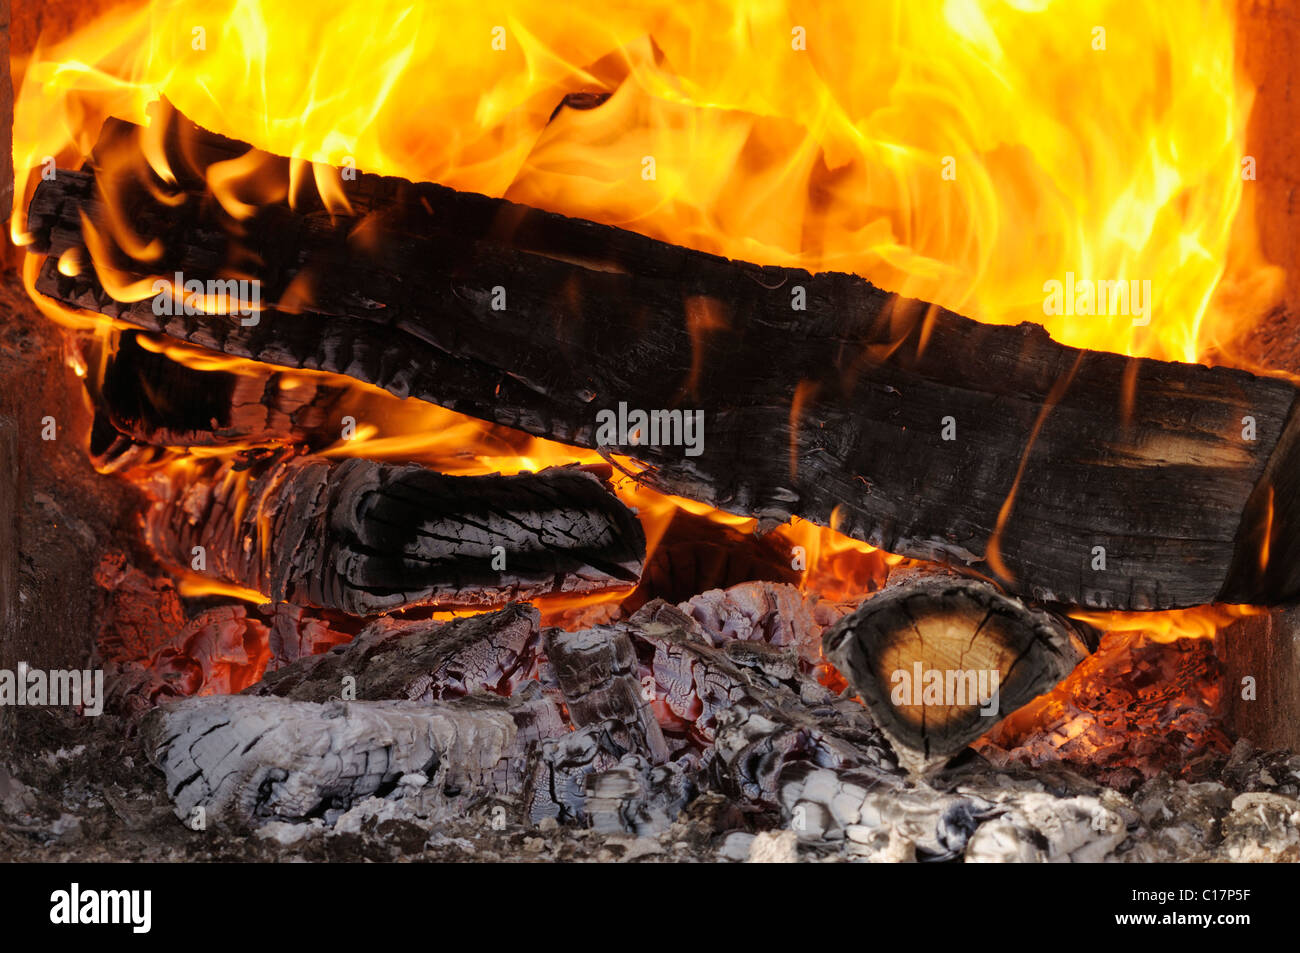 Wood fire, blazing, red hot logs, large flames - Stock Image